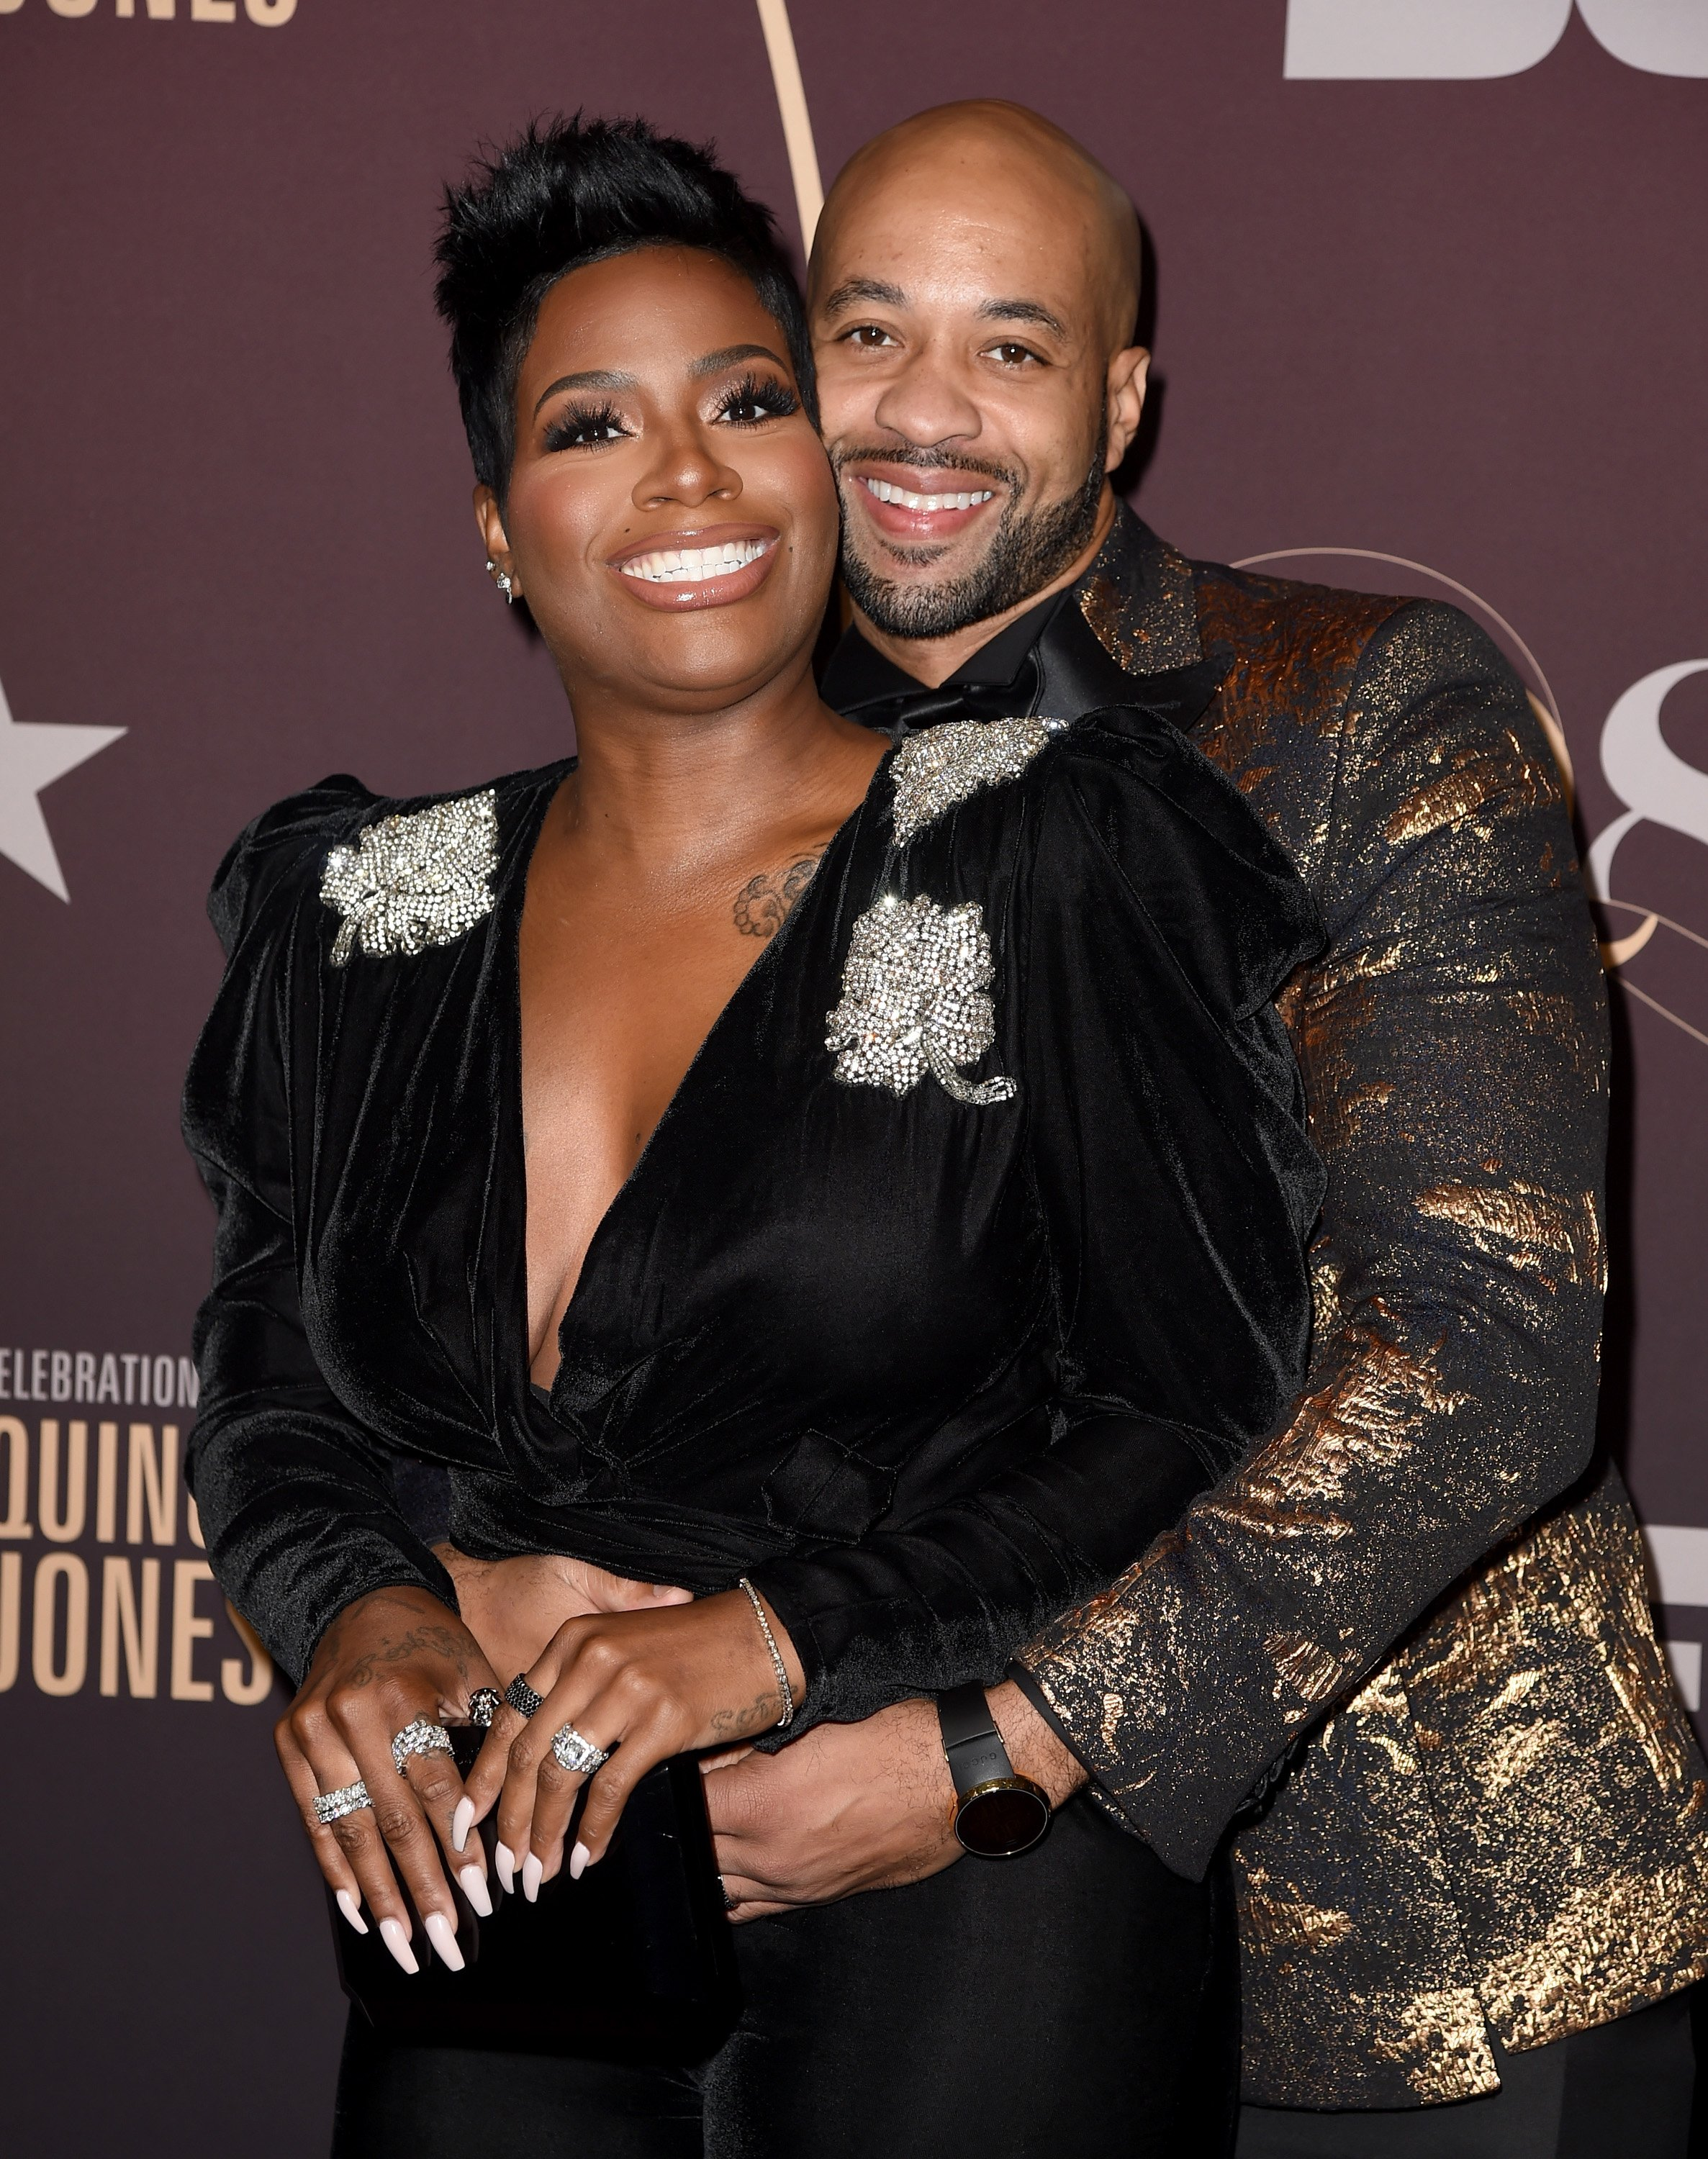 Fantasia Barrino and Kendall Taylor at the Q85: A Musical Celebration for Quincy Jones in Los Angeles, California, in September 2018. | Photo: Getty Images